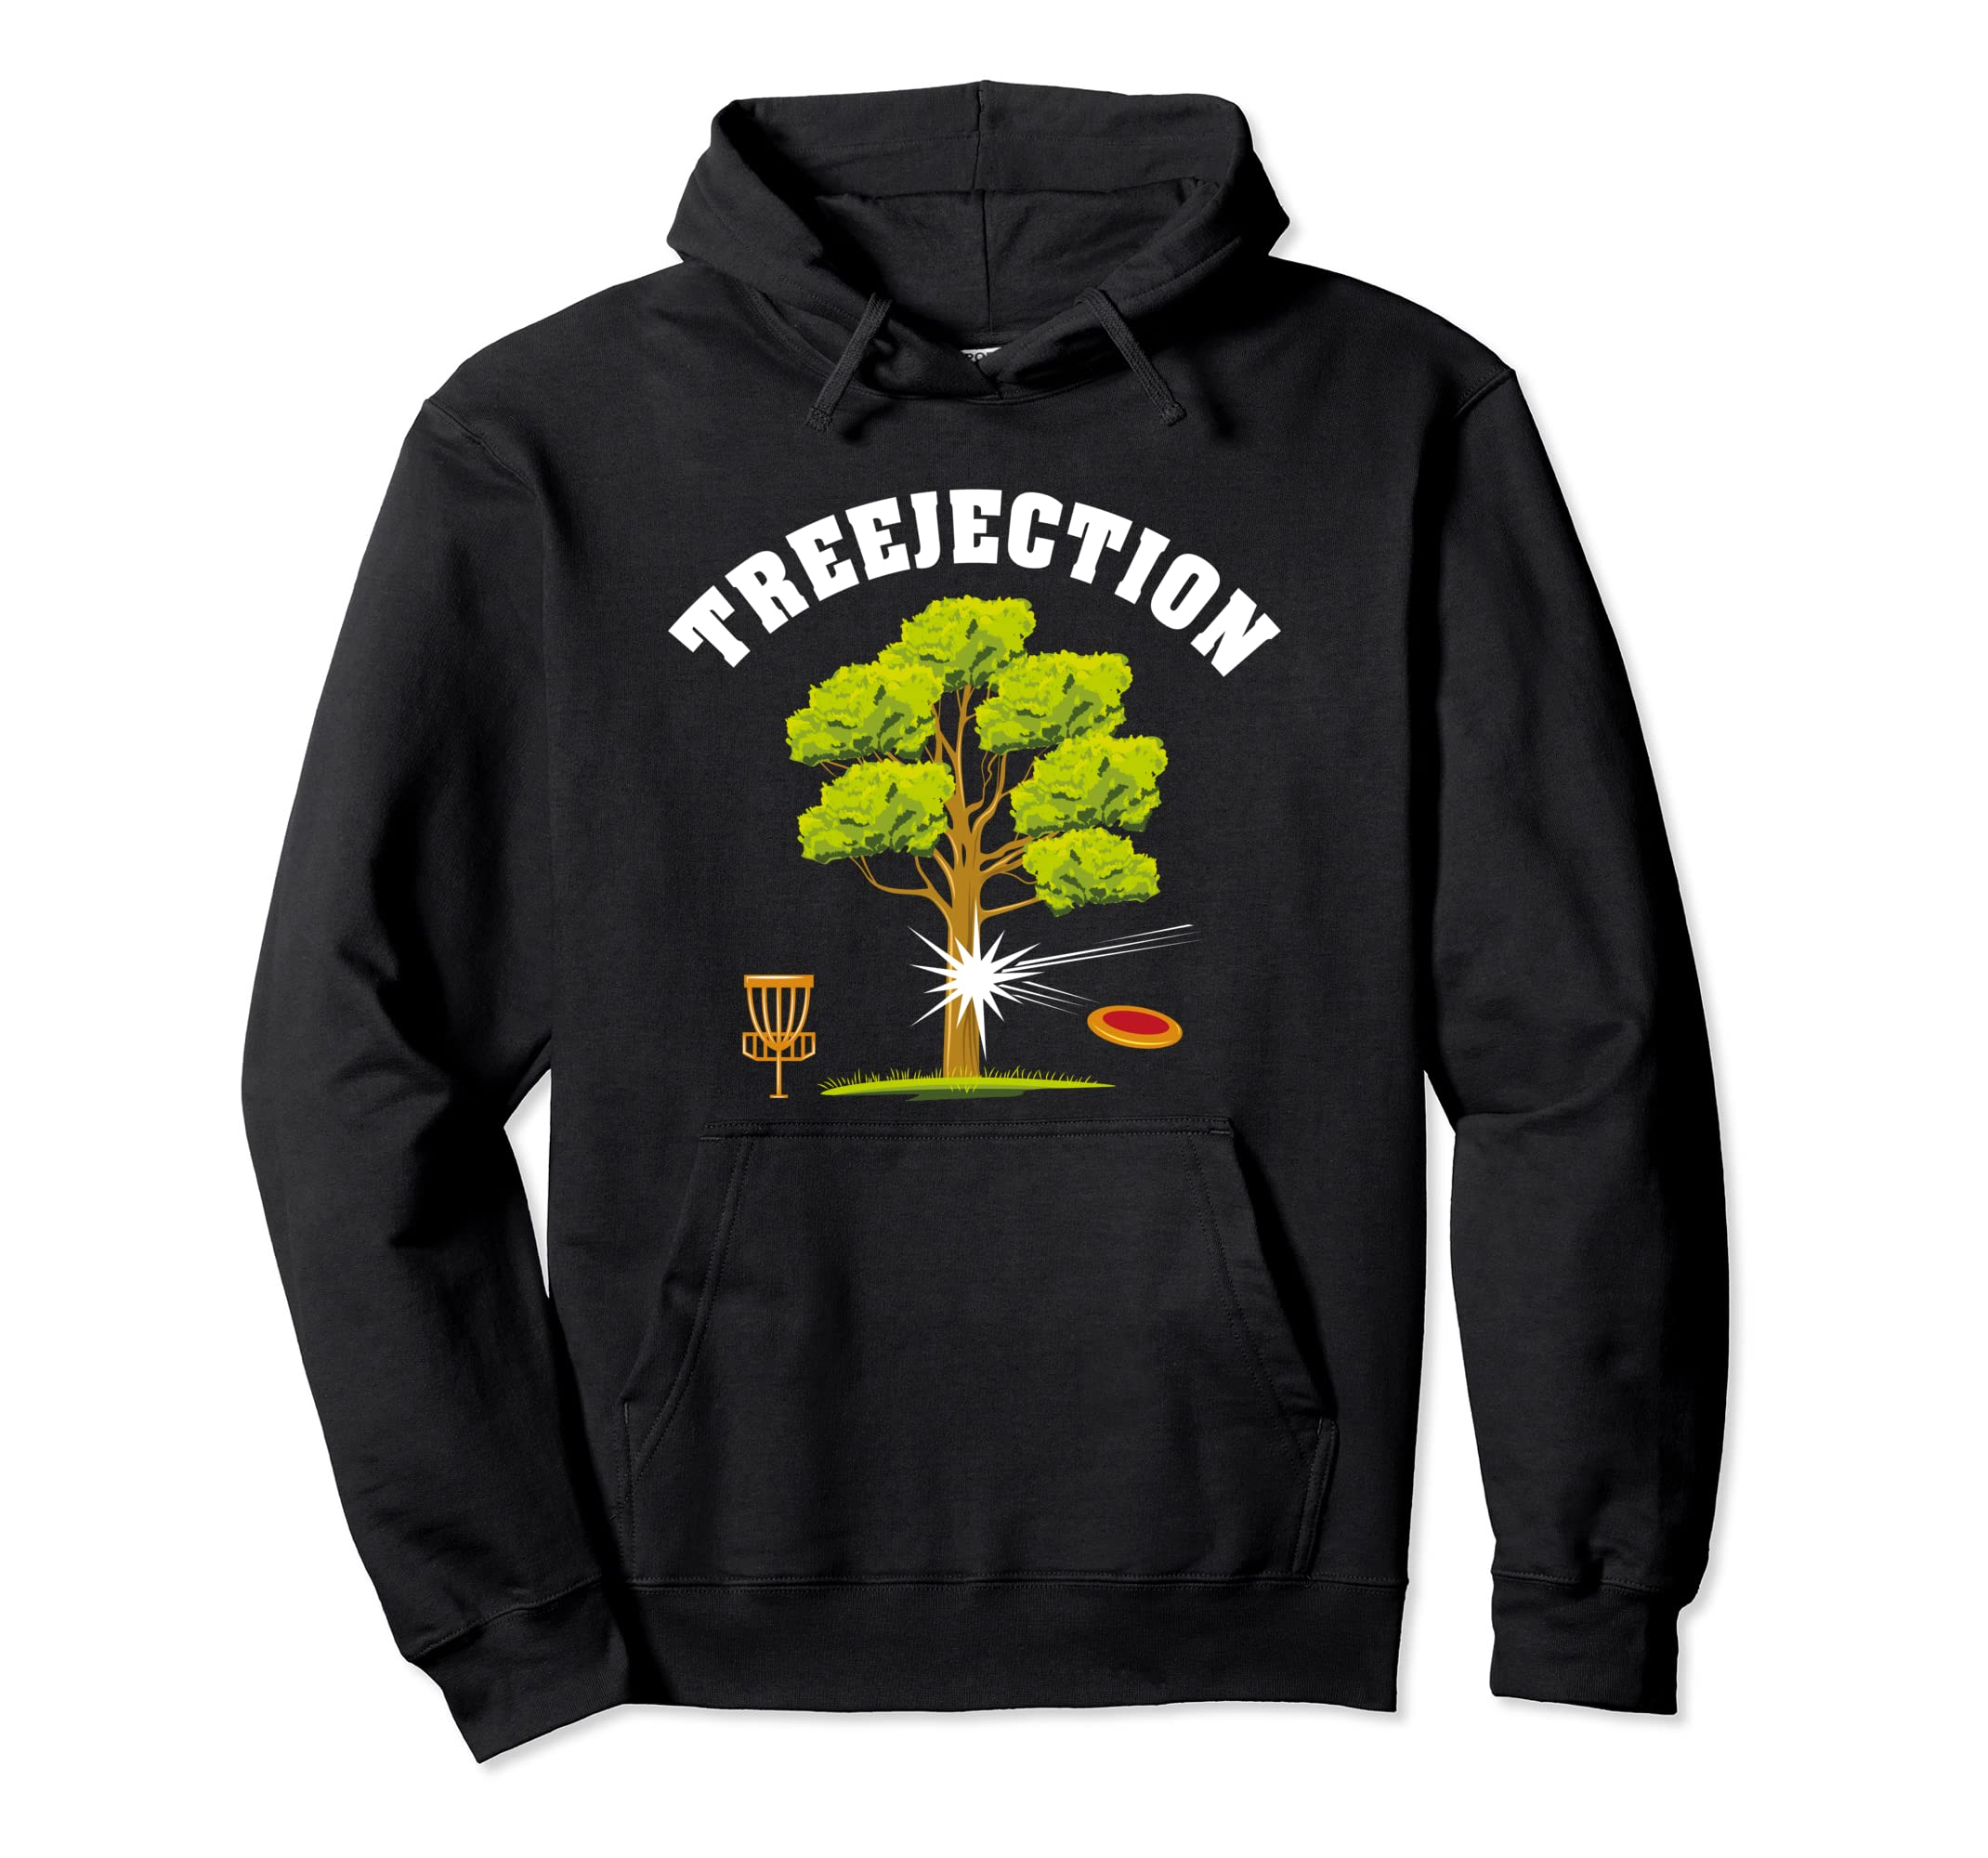 Amazon.com: Treejection Hoodie - Funny Disc Golf Quotes ...